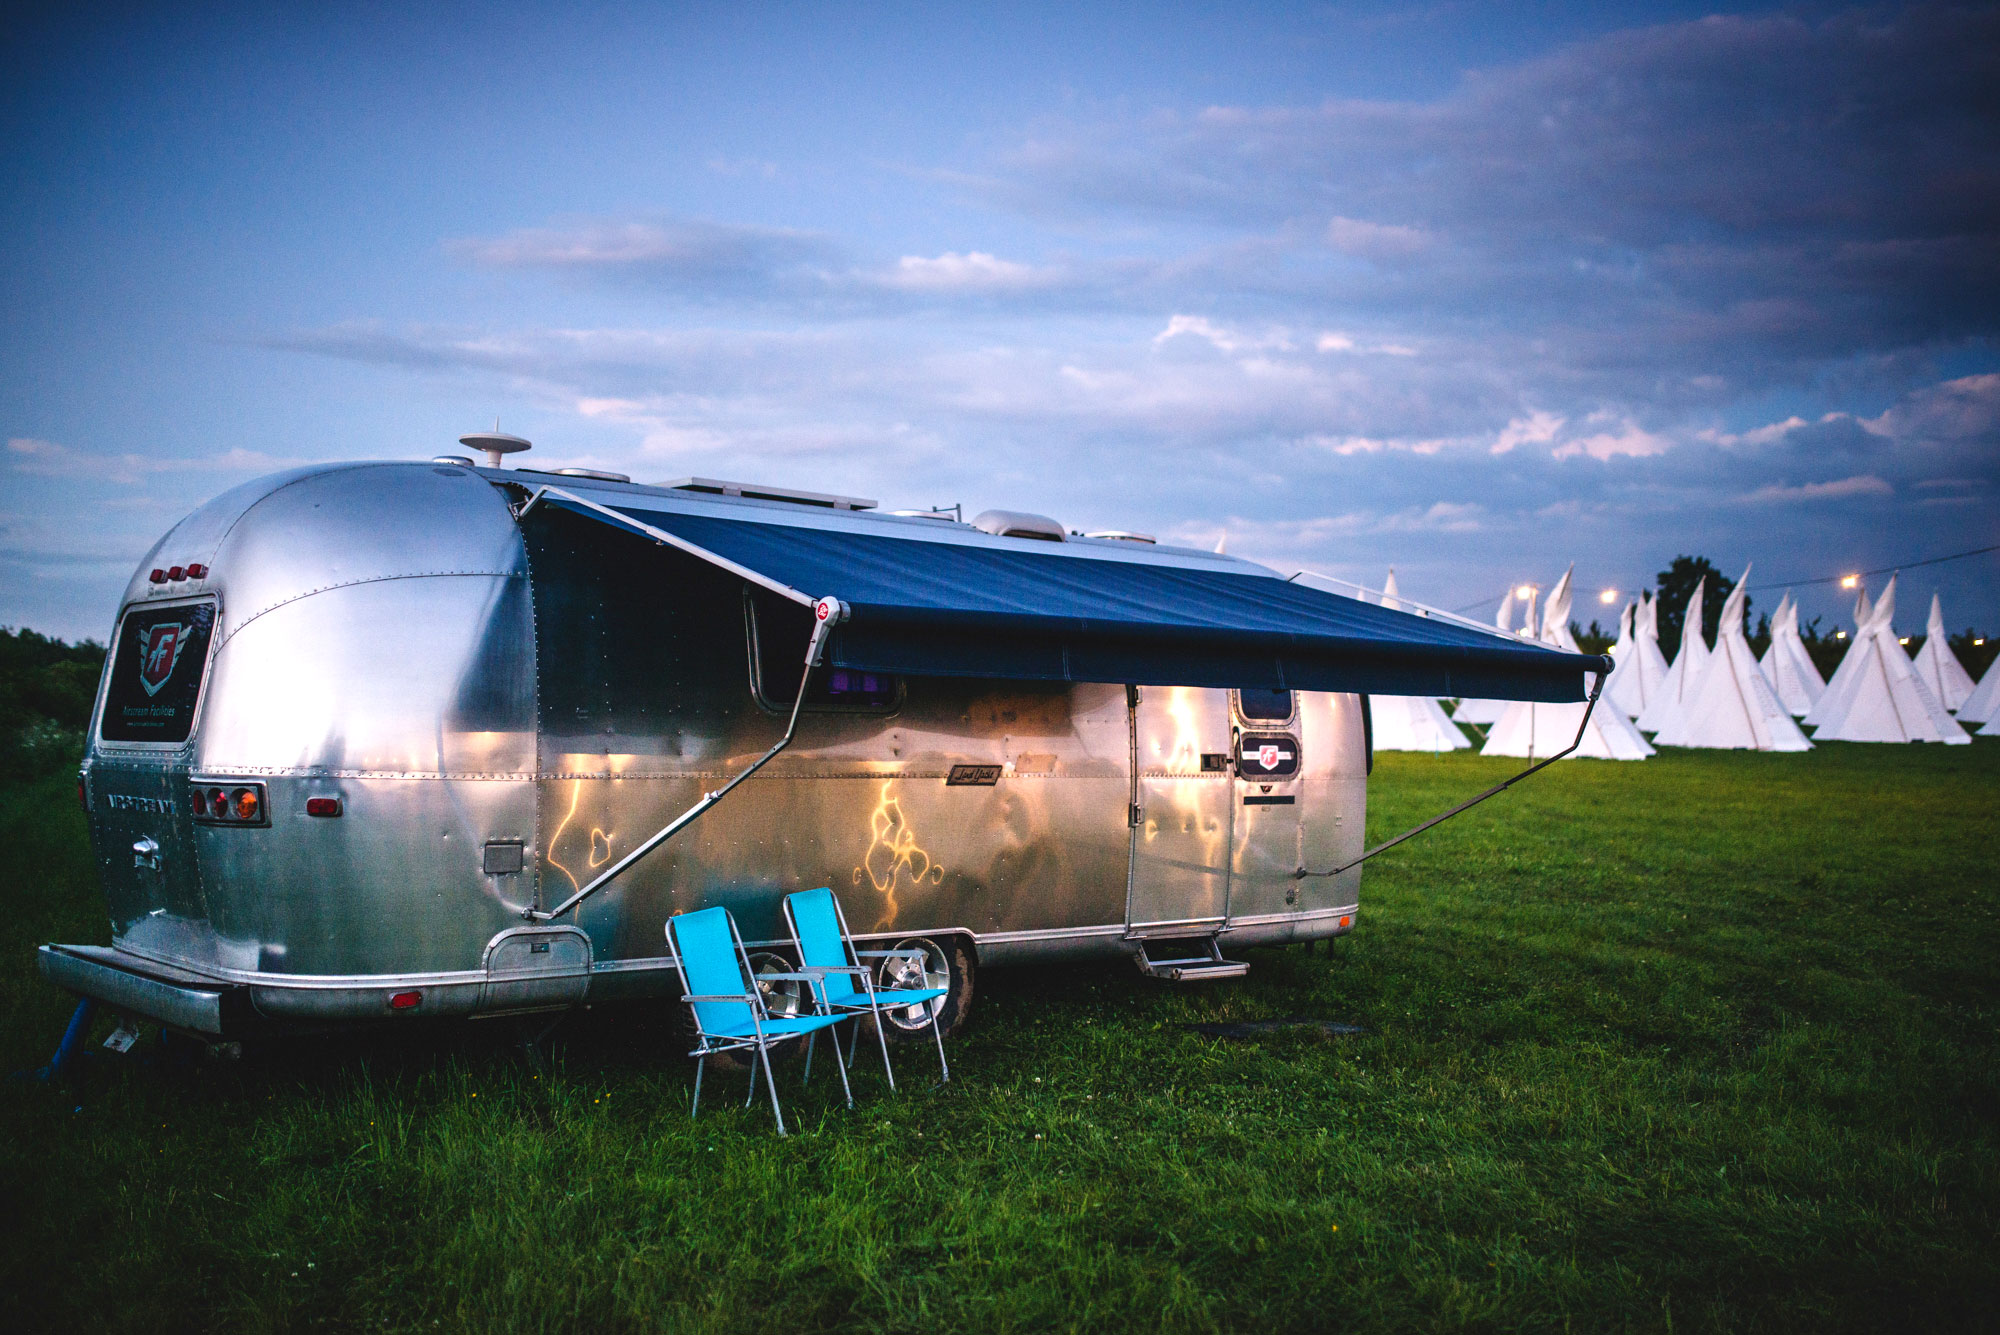 Airstream caravan with awning and chairs at dusk in the Pennard Orchard field